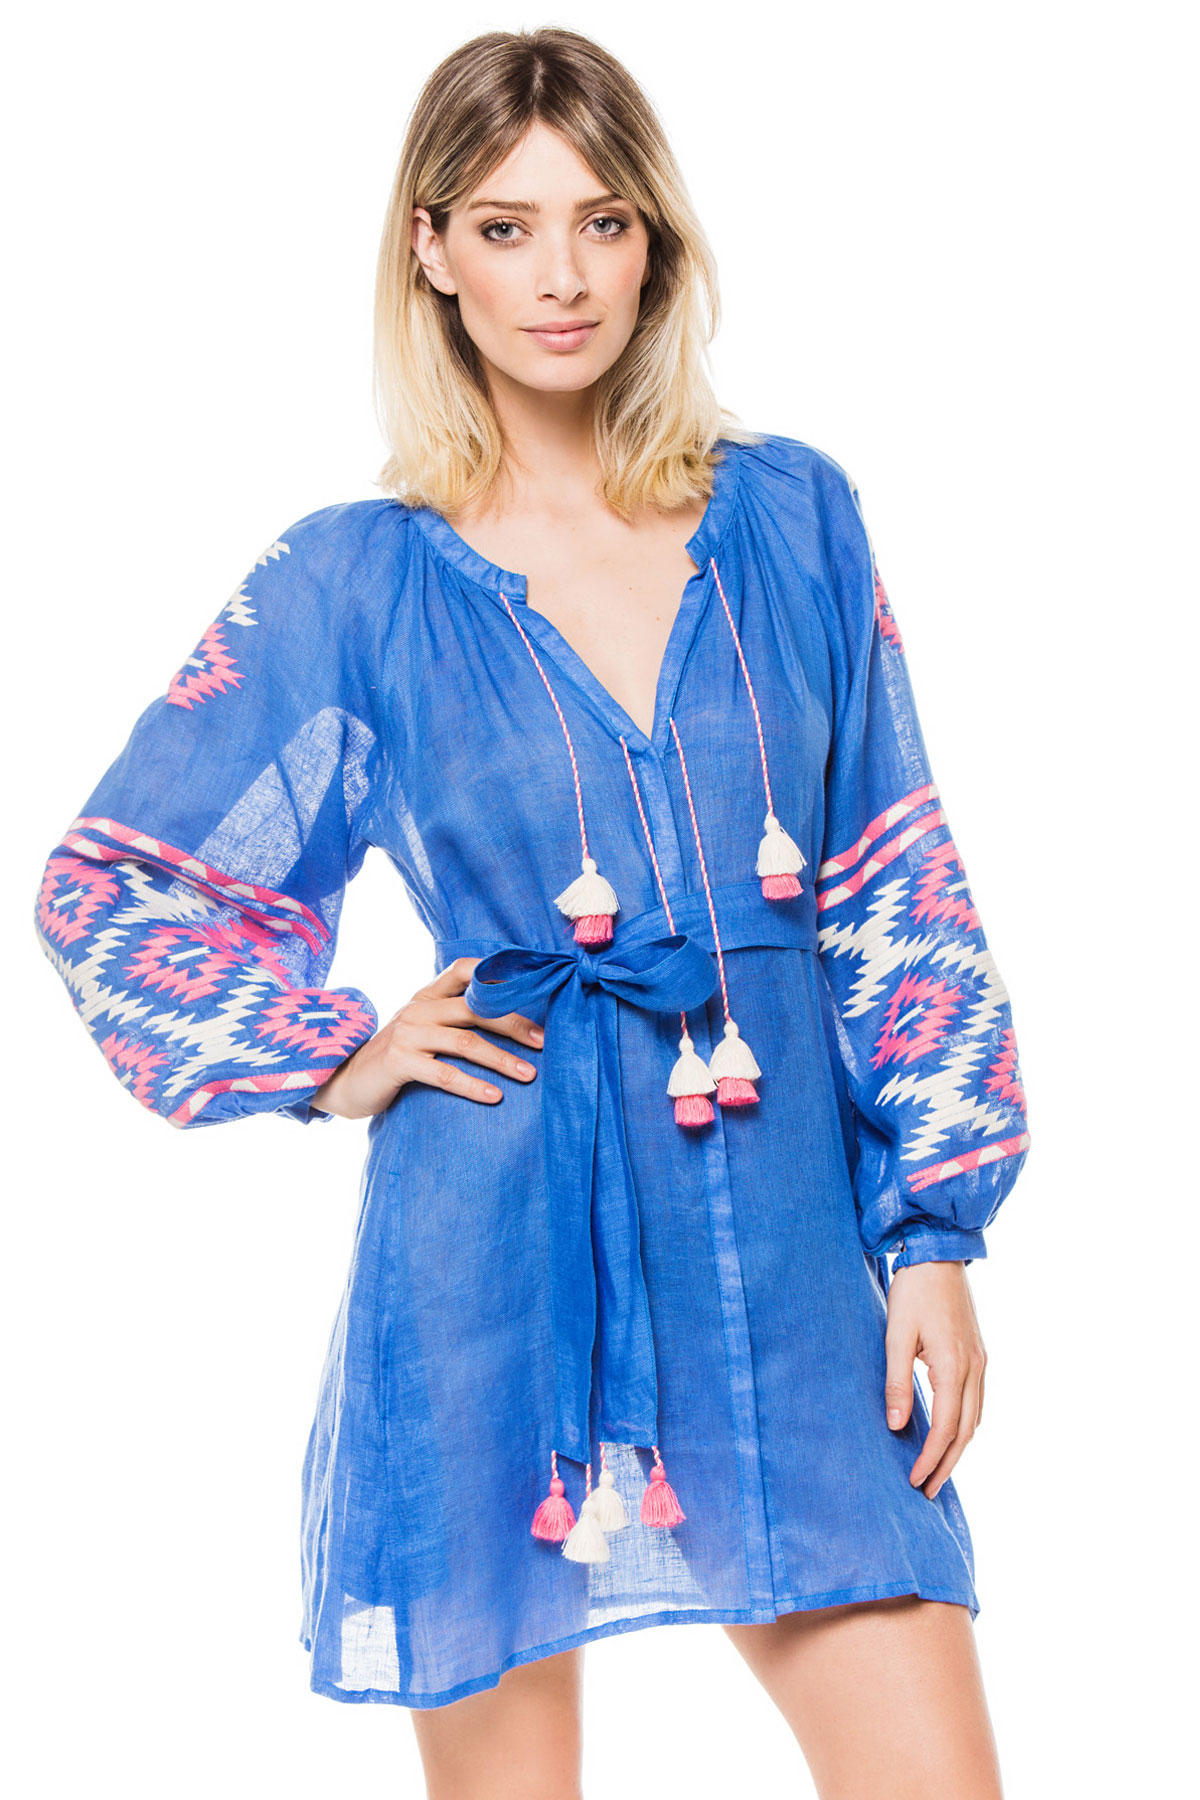 Istanbul Embroidered Mini Dress - Blue 1